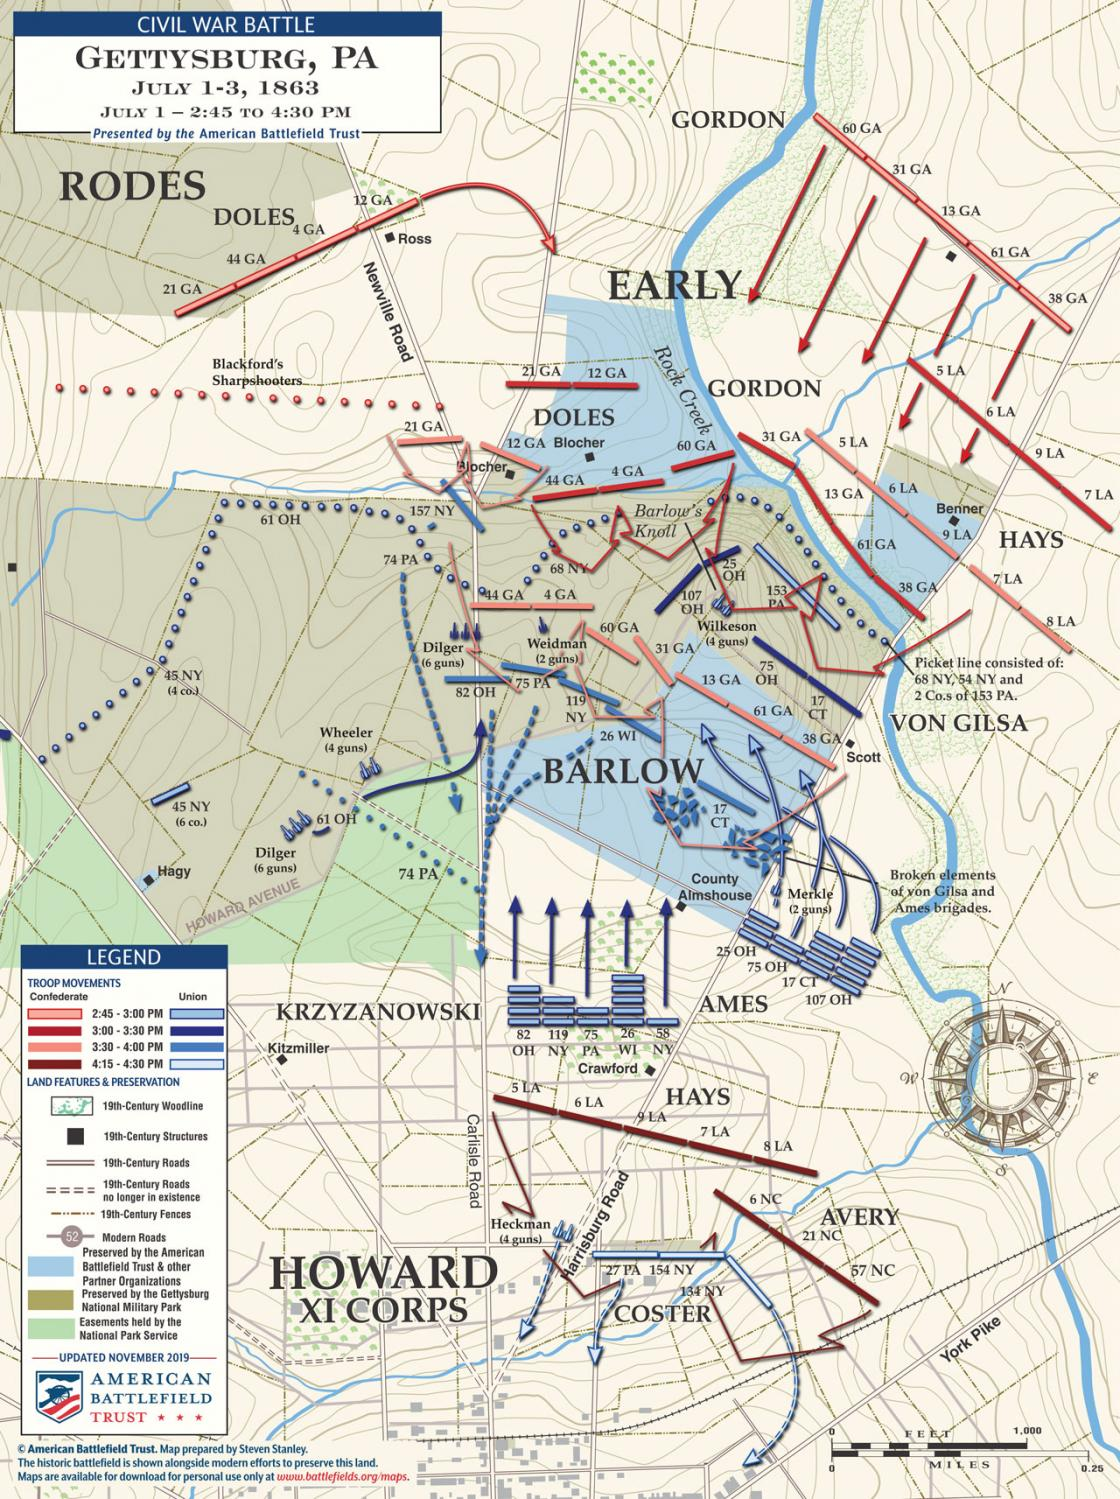 Gettysburg - Fight for Barlow's Knoll - July 1, 1863 - 2:45pm to 4:30pm (November 2019)